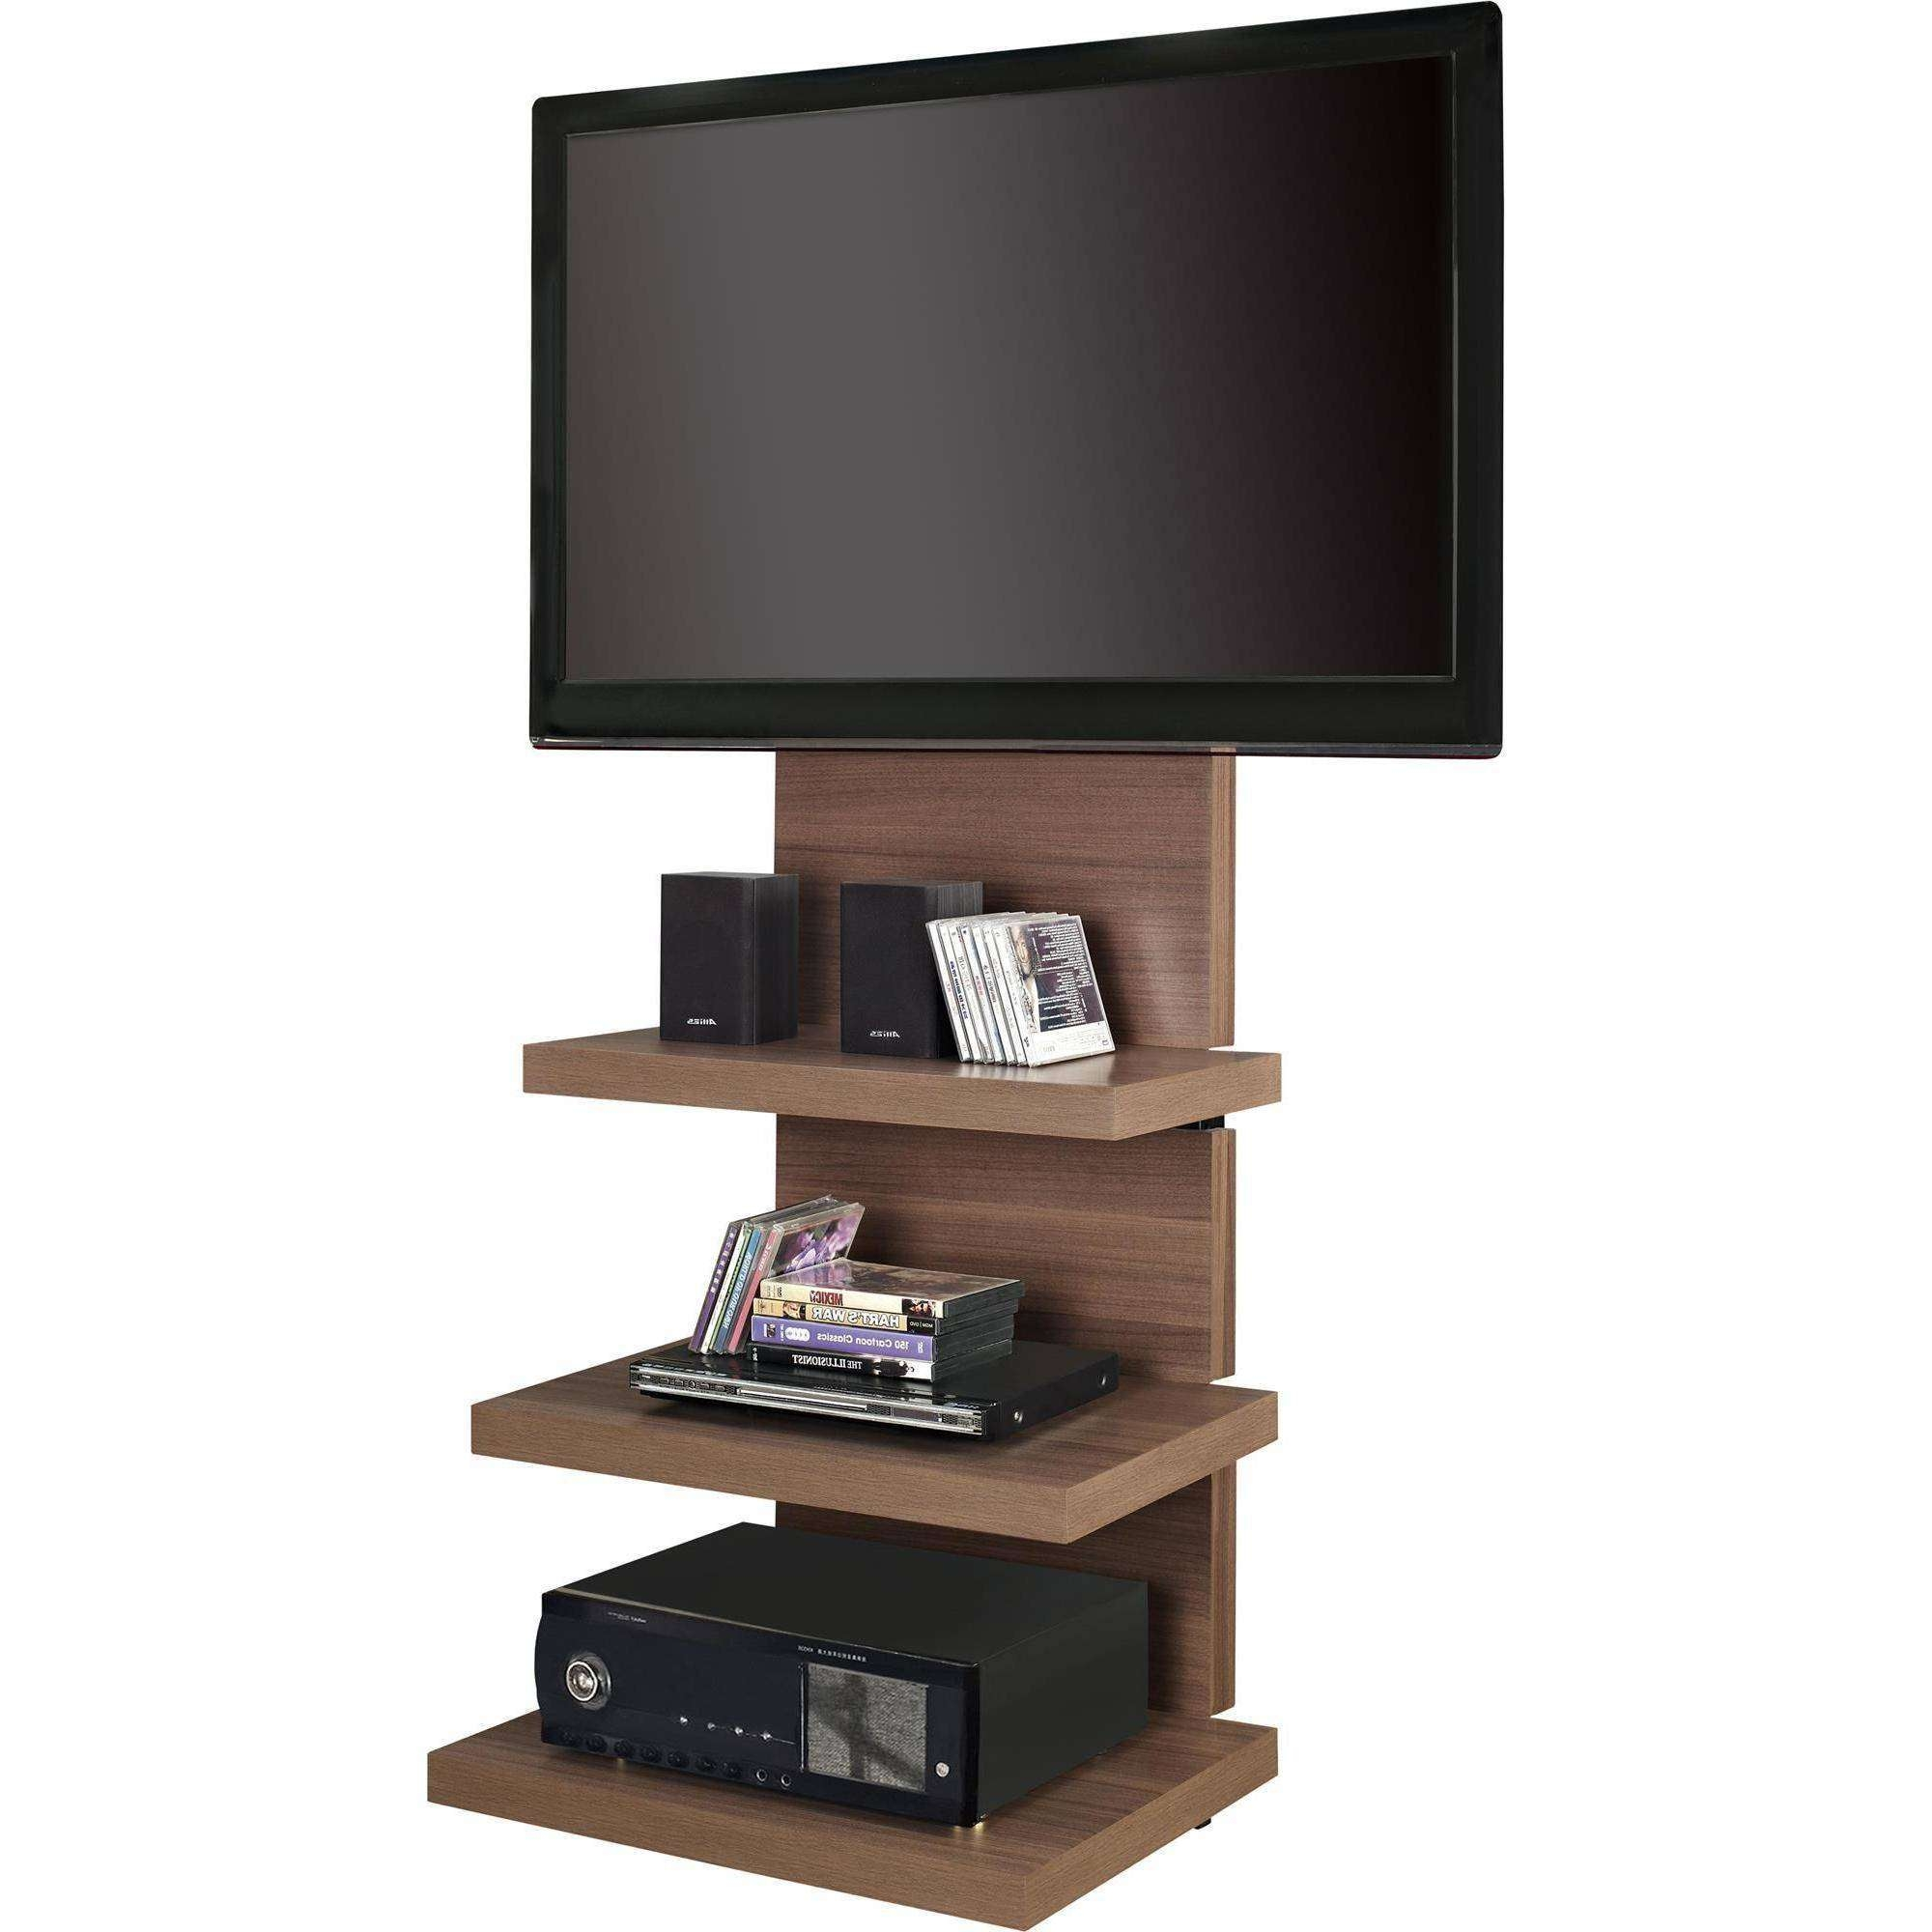 Tv : Amazing Wood Tv Stands With Swivel Mount Ameriwood Home With Wood Tv Stands With Swivel Mount (View 11 of 15)